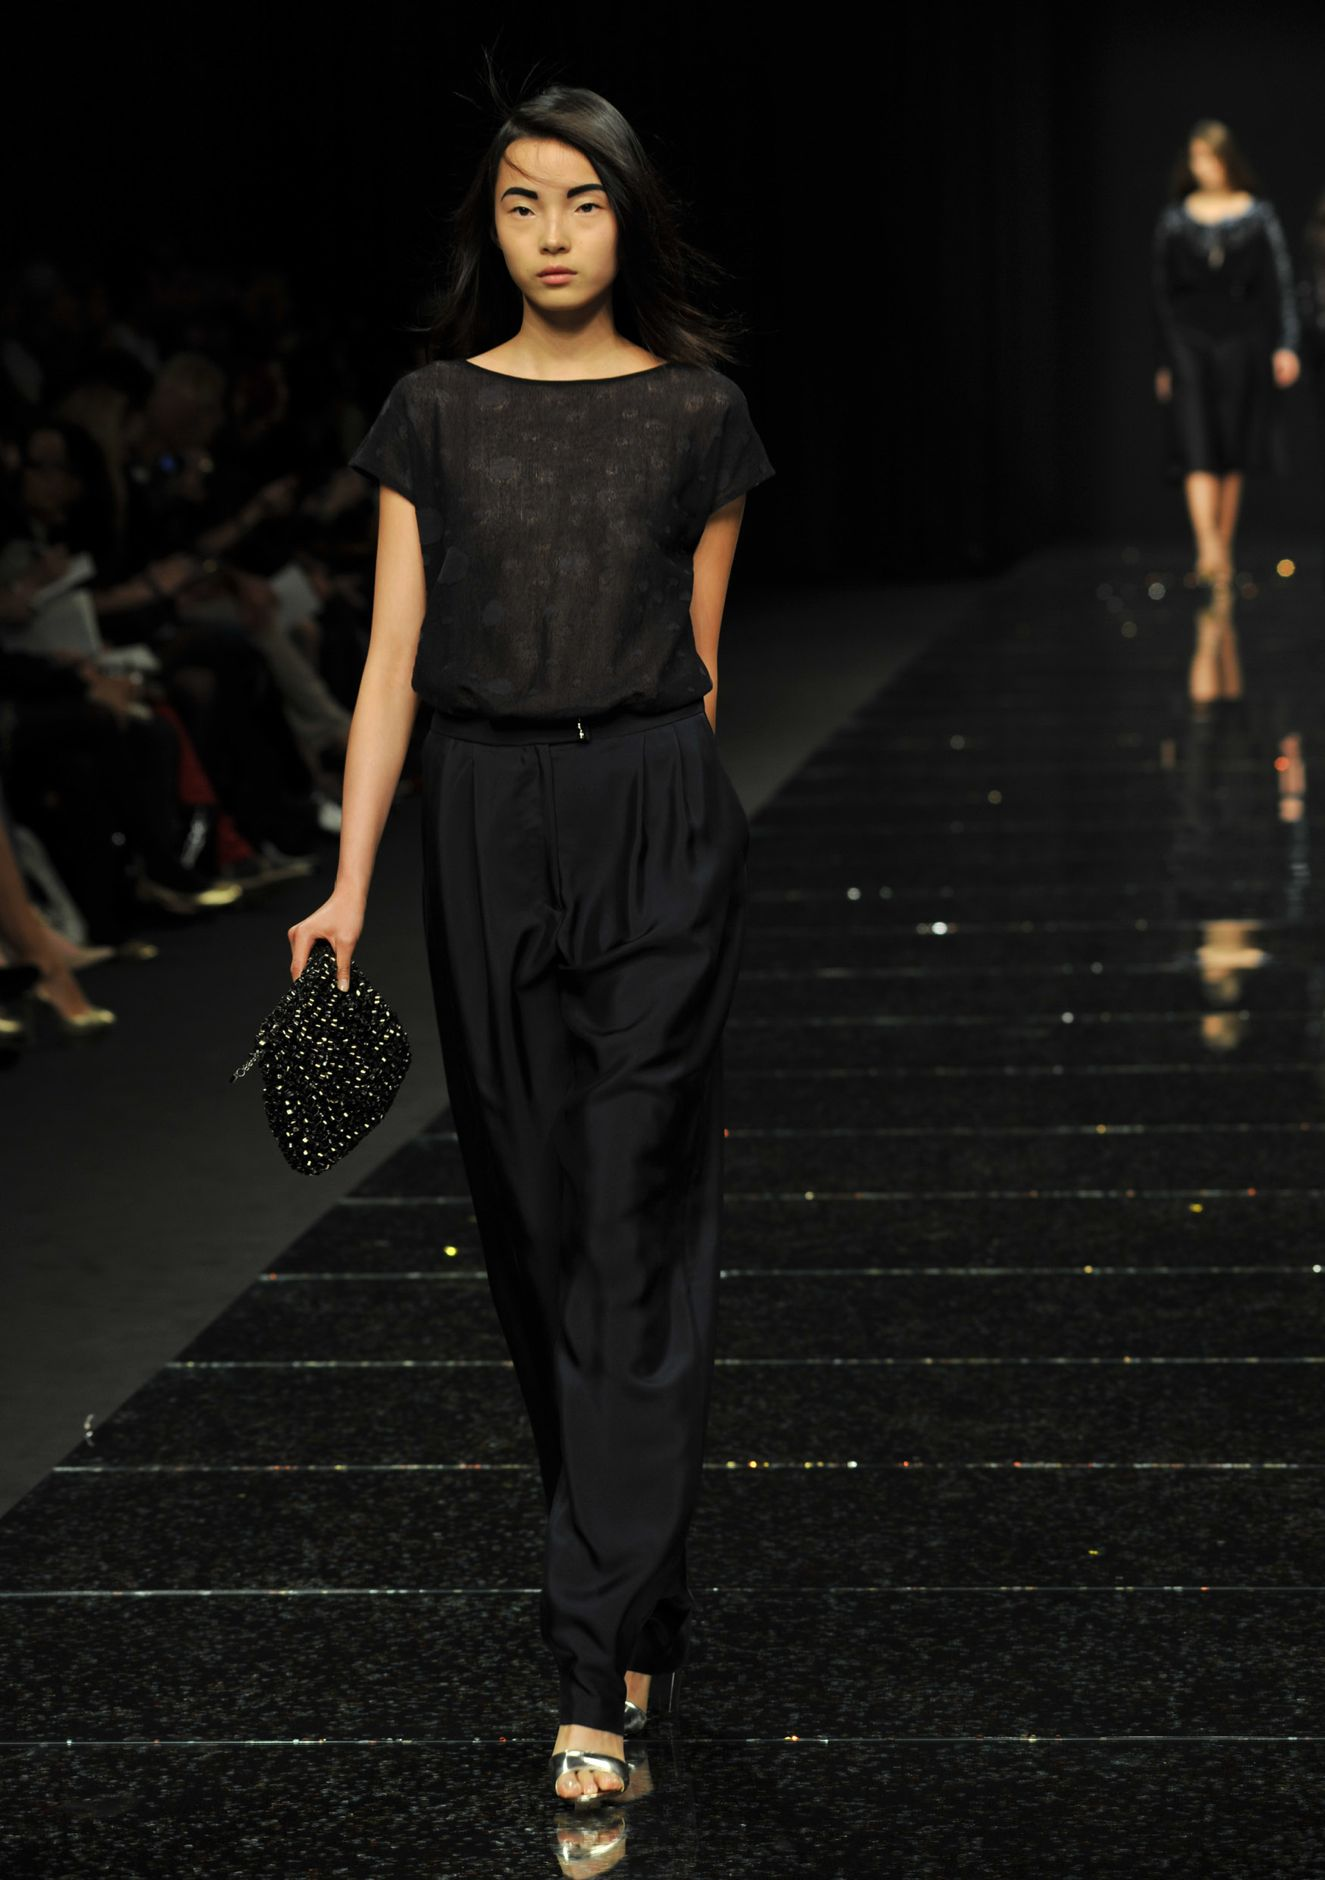 Anteprima Spring 2013 Collection Milan Fashion Week